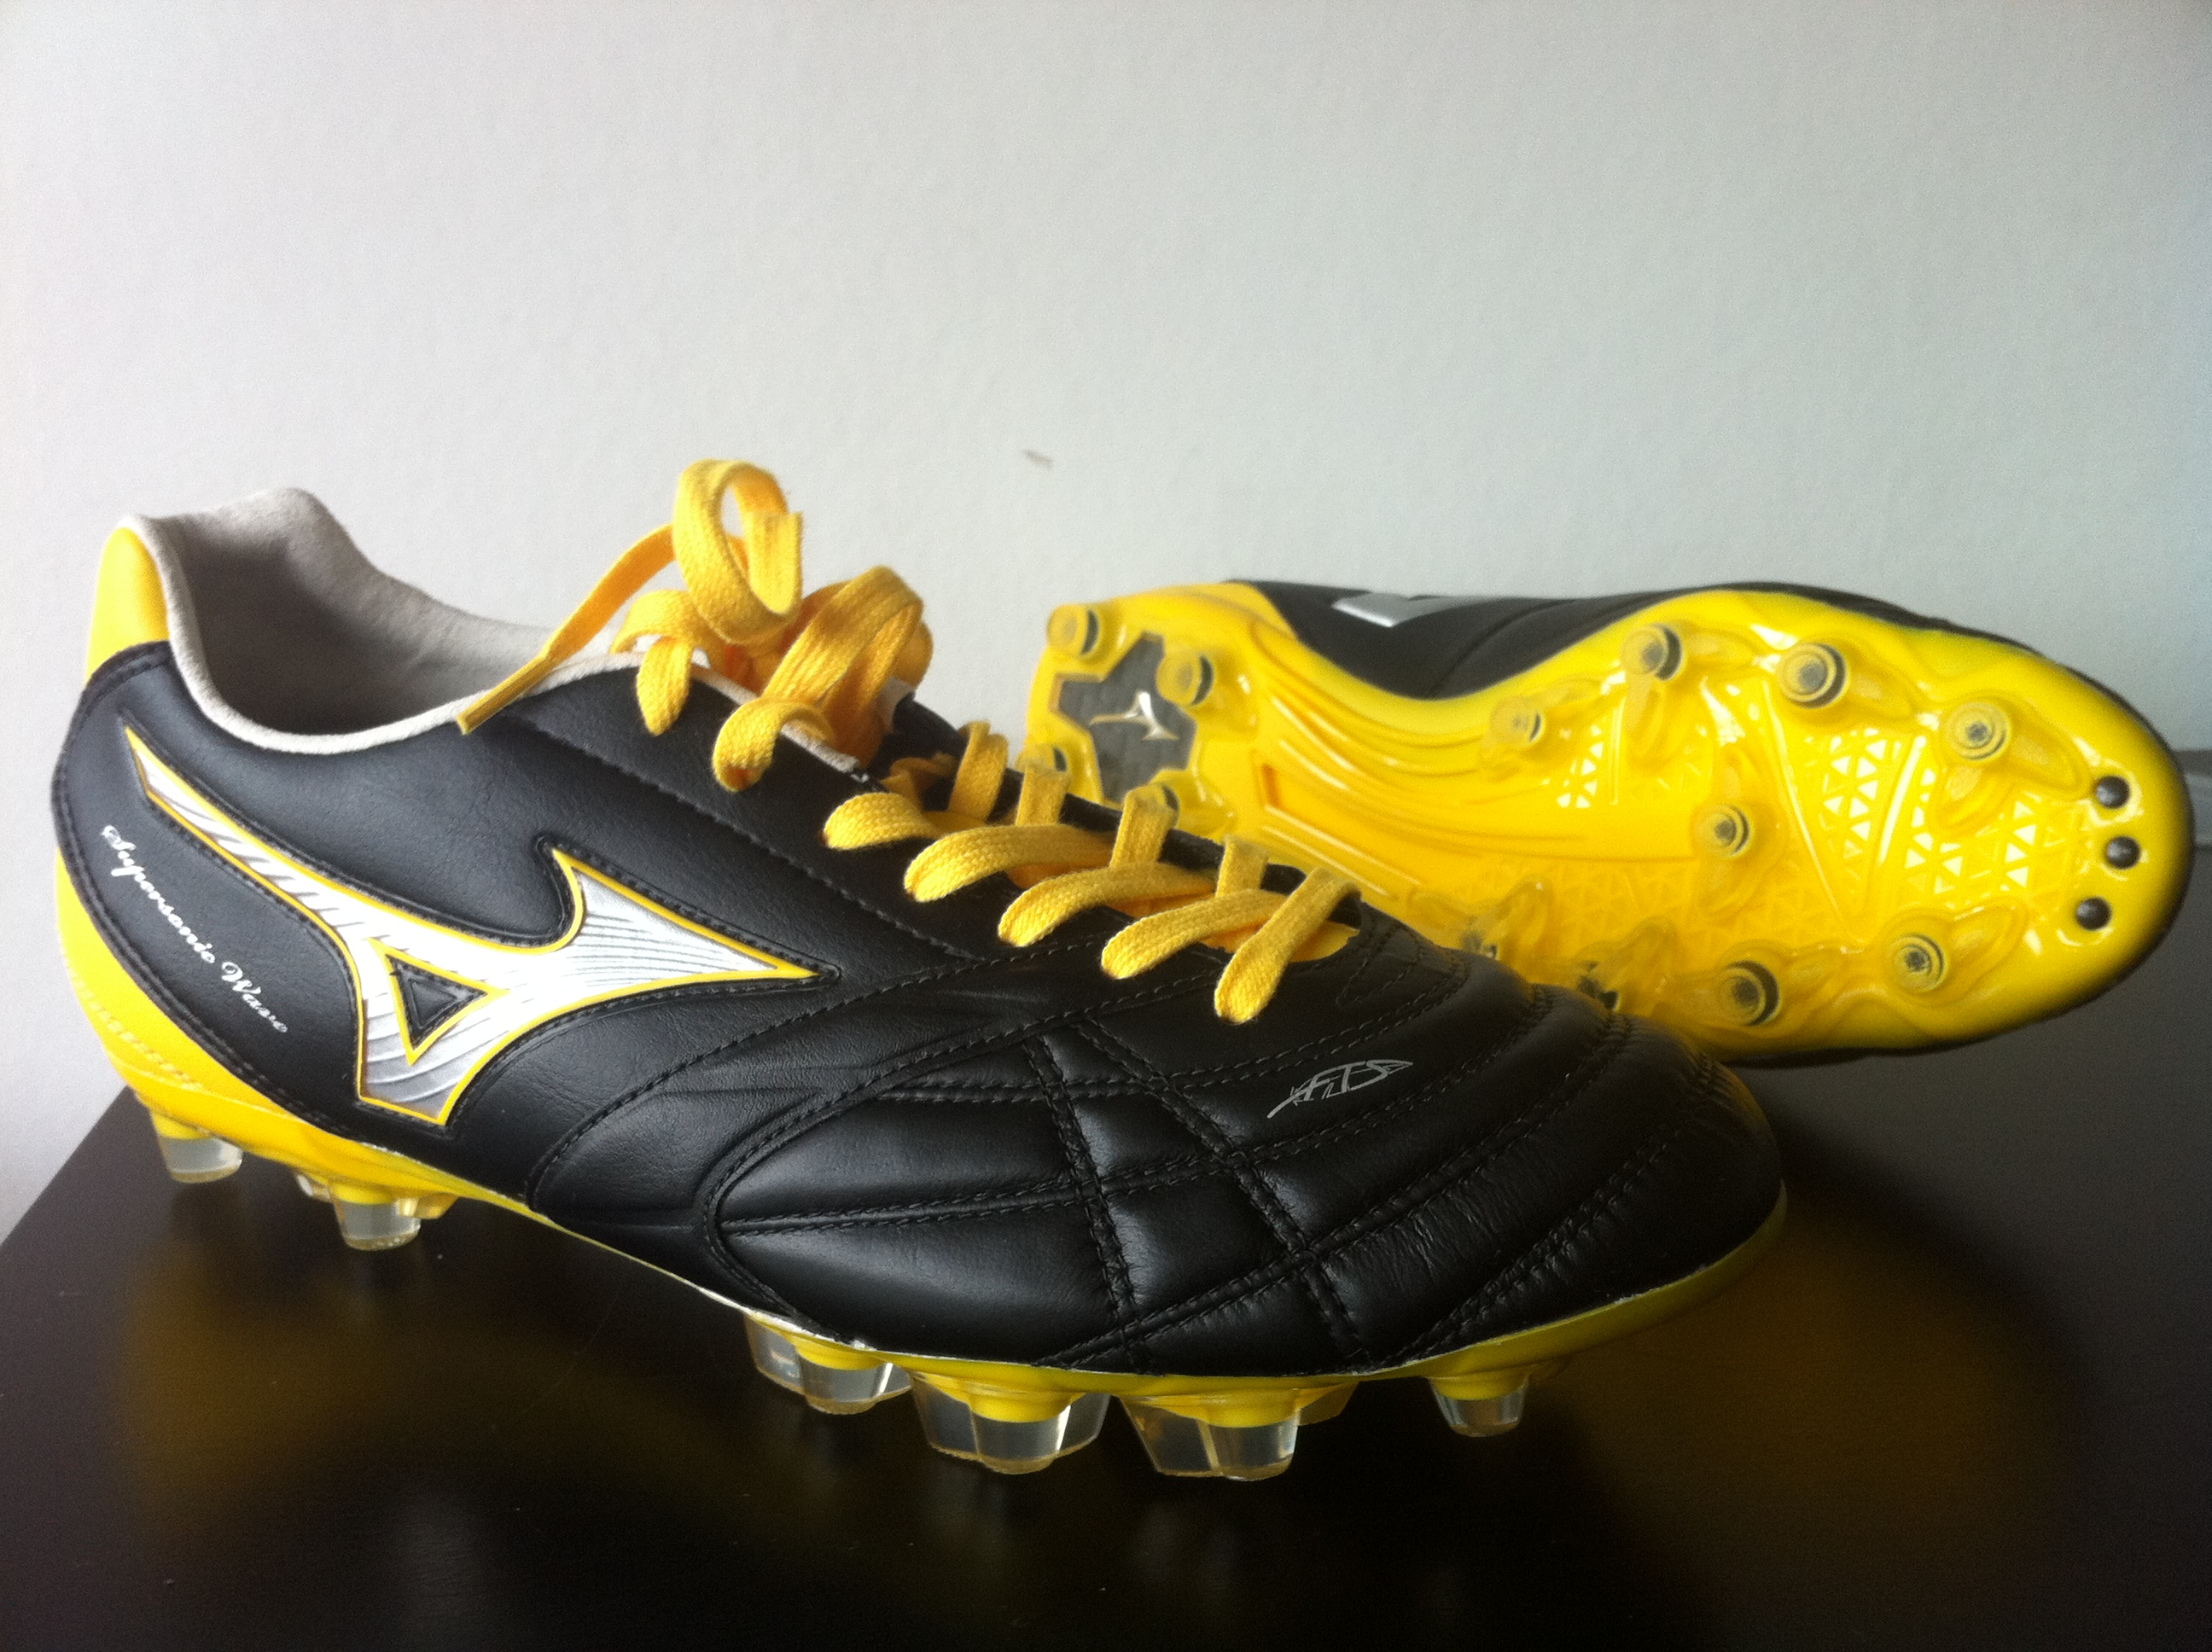 Mizuno SuperSonic Wave 3 MD football boots arrive at Sport